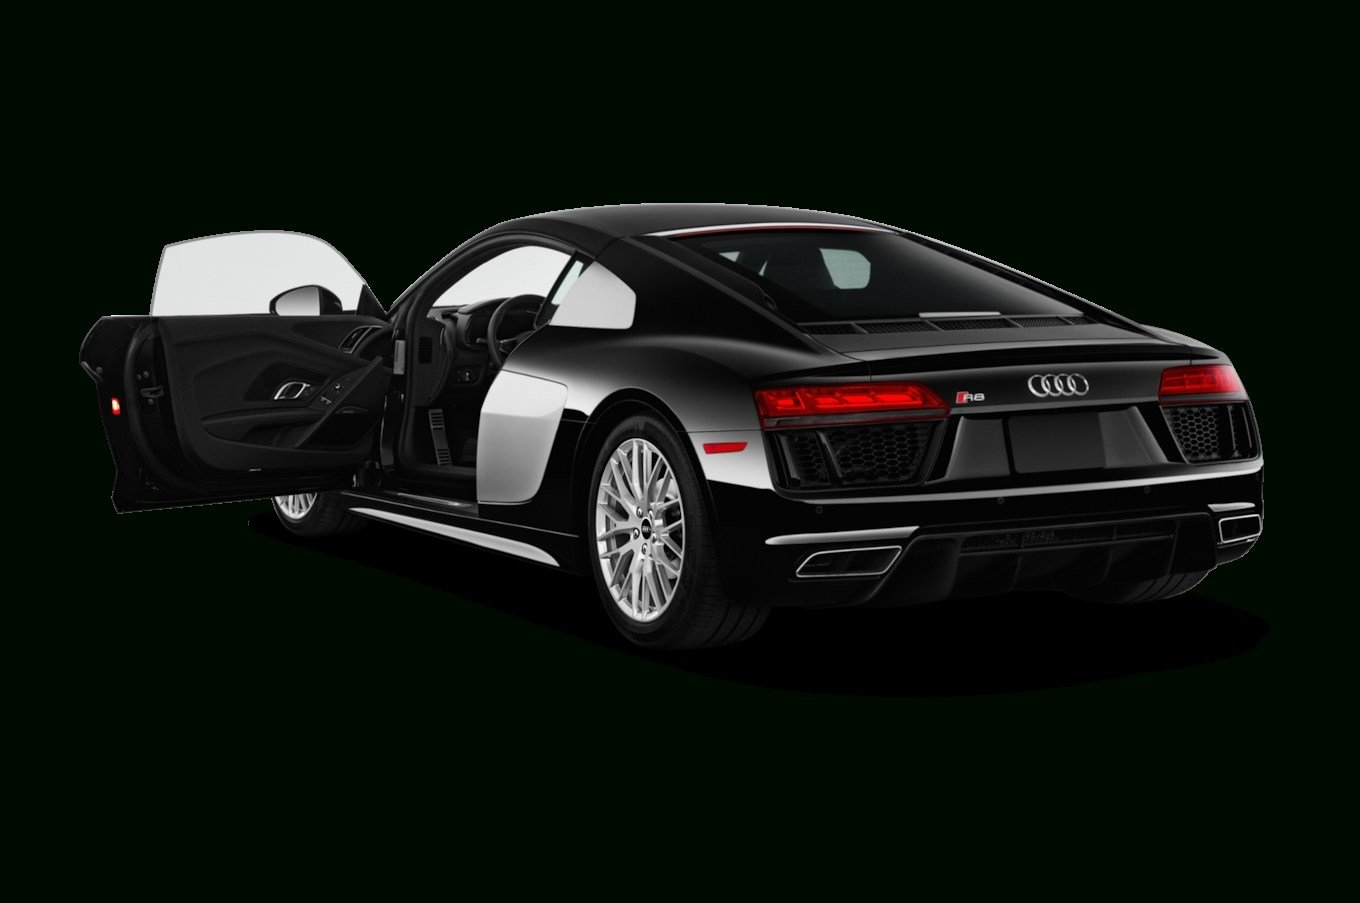 Latest Audi Sports Car Models Interior 2019 2020 Cars Free Download